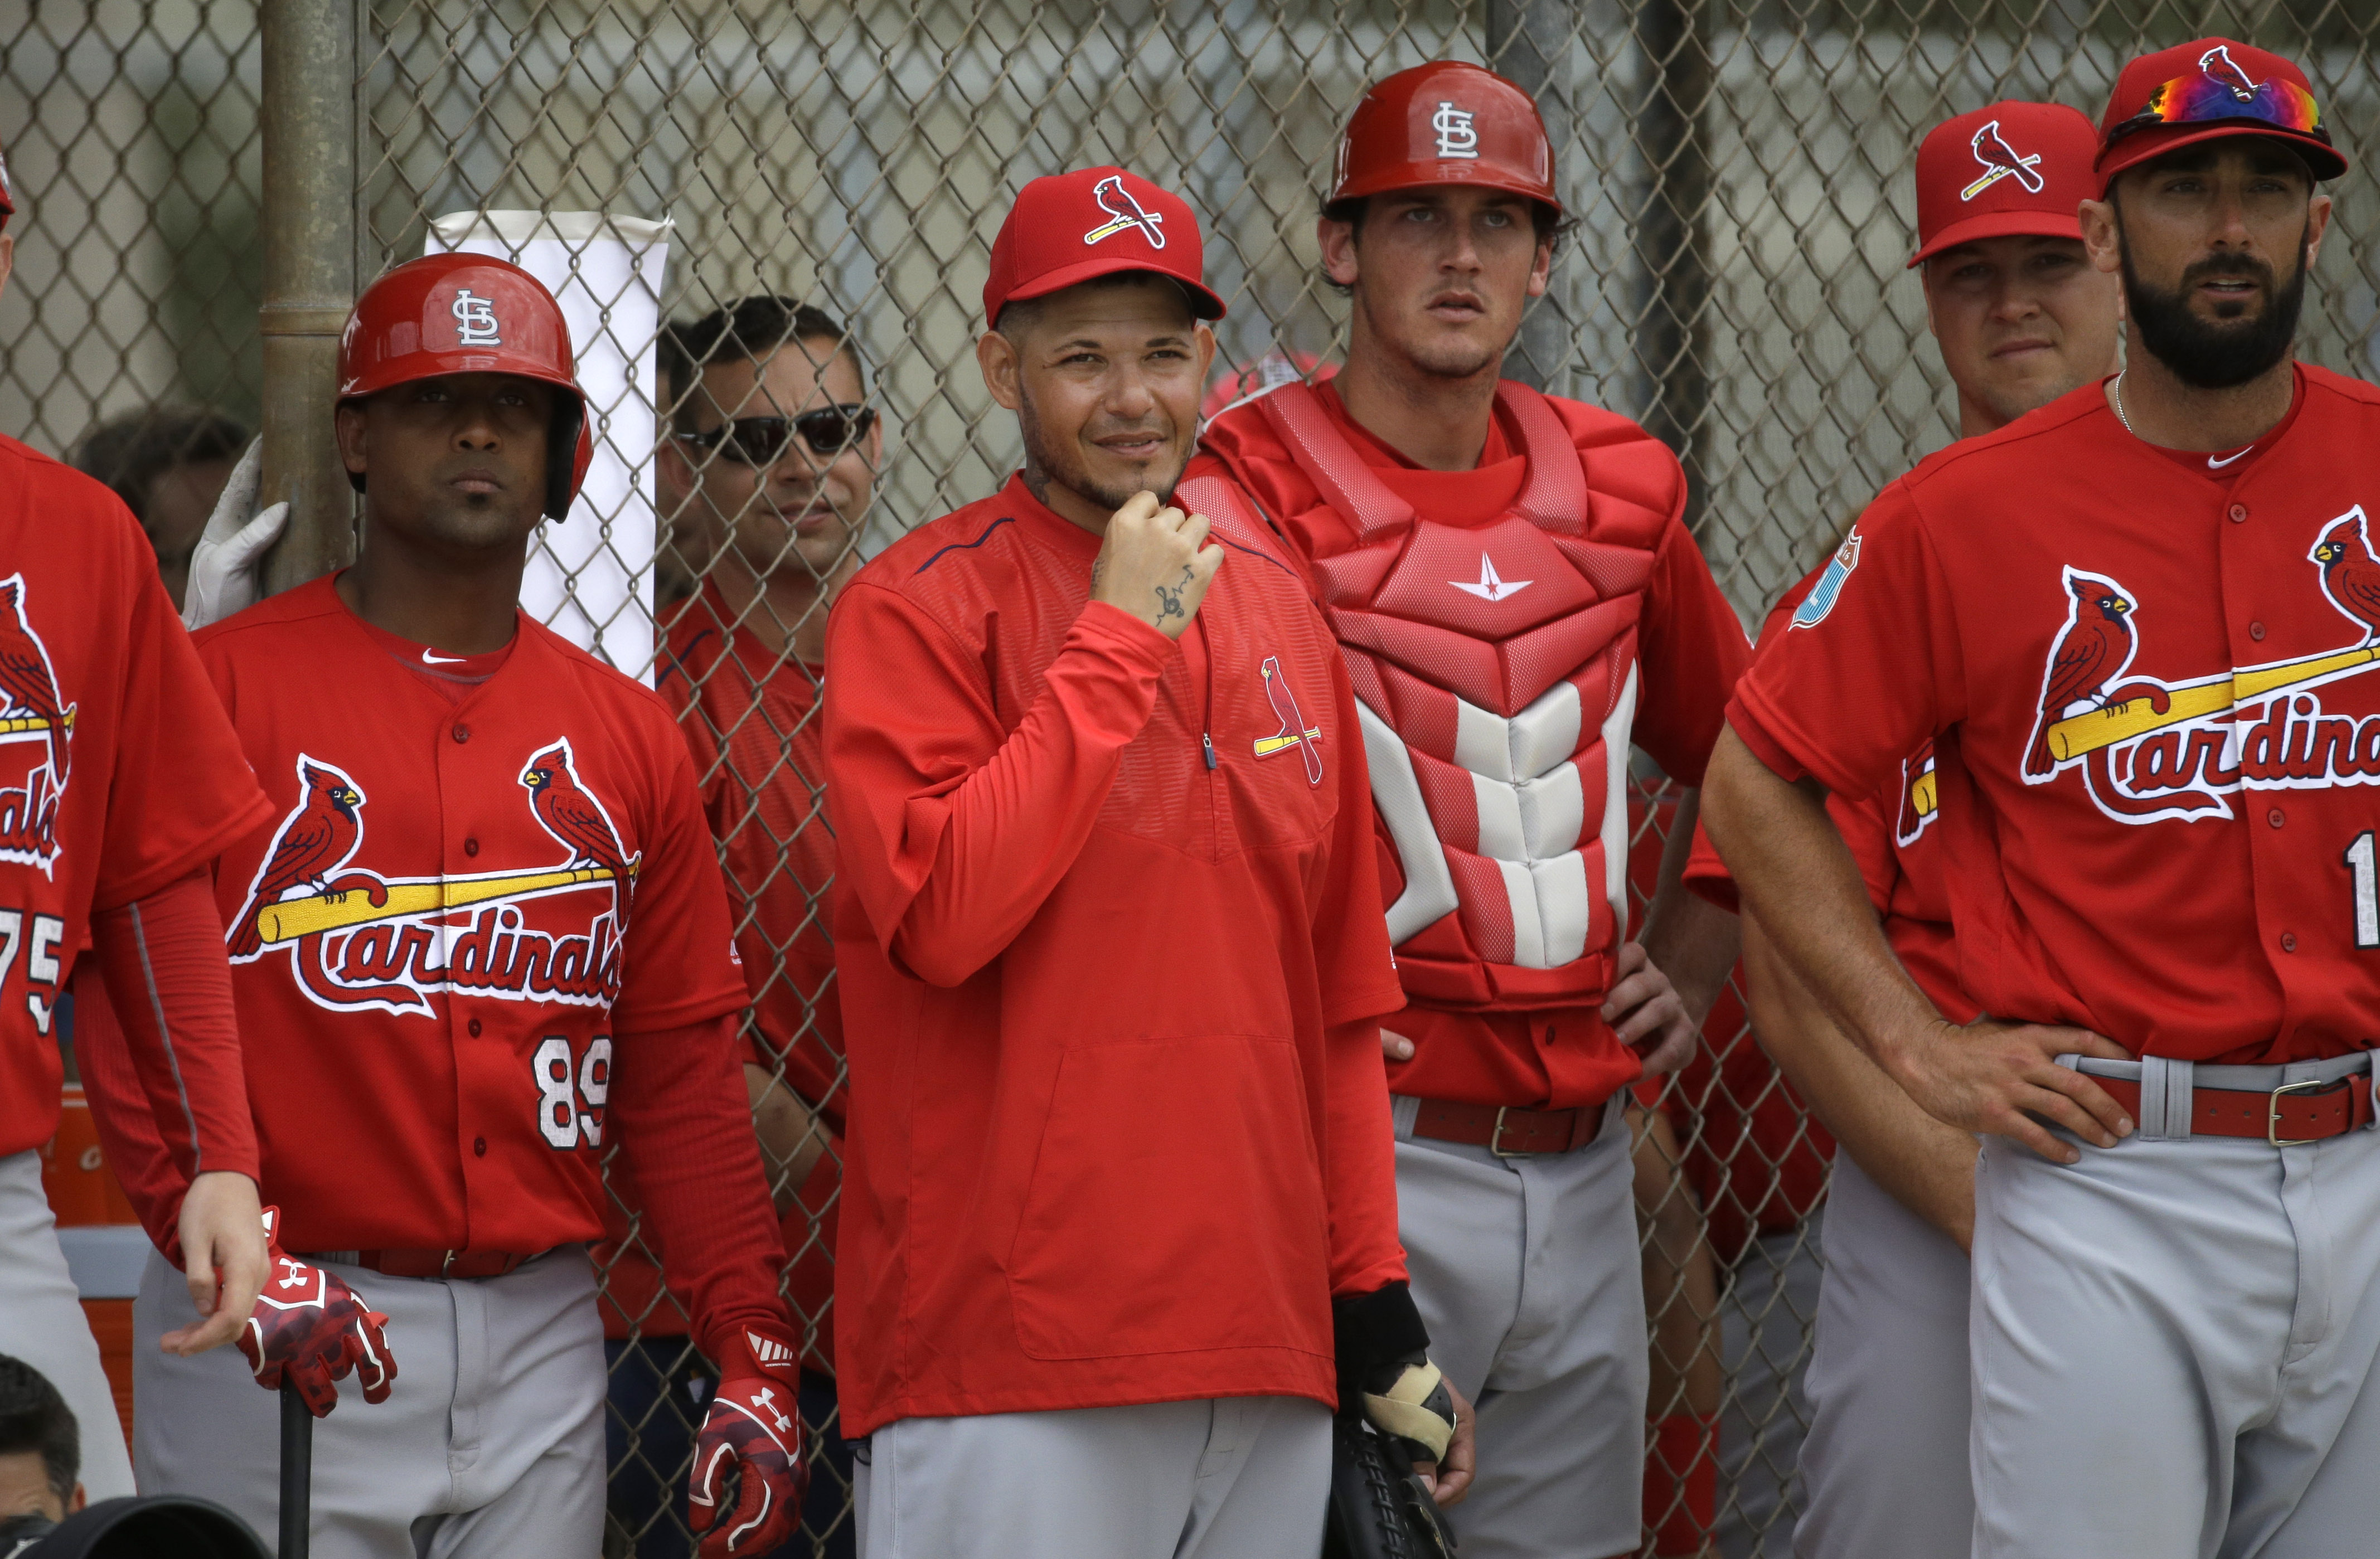 St. Louis Cardinals catcher Yadier Molina, center, watches from the dugout during a spring training intrasquad baseball game Monday, Feb. 29, 2016, in Jupiter, Fla. (AP Photo/Jeff Roberson)